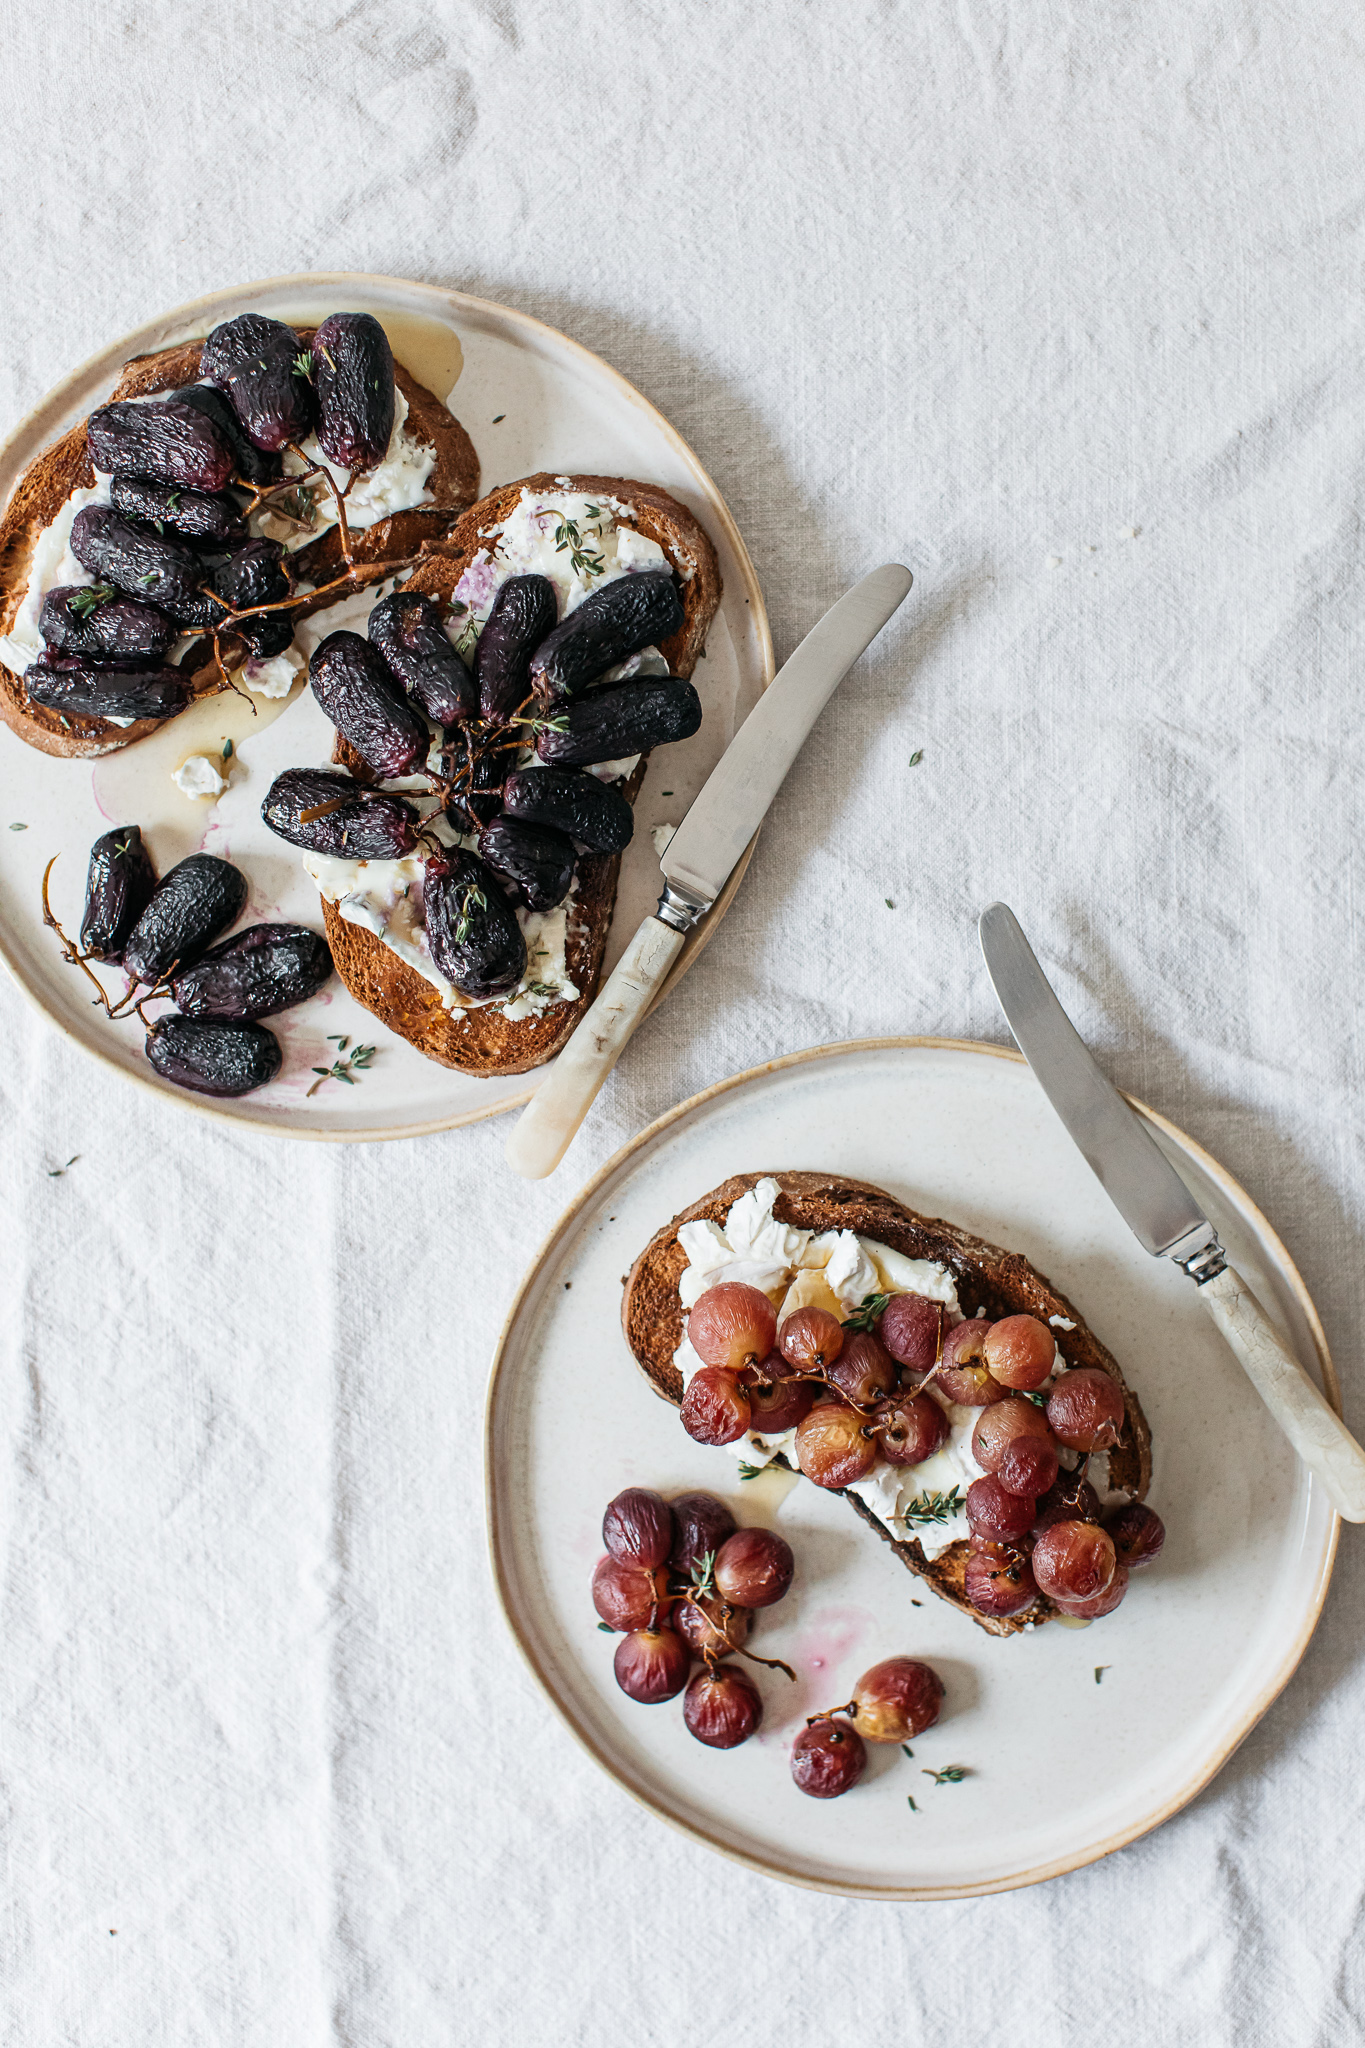 Roasted black and red grapes on gluten free goats cheese toast